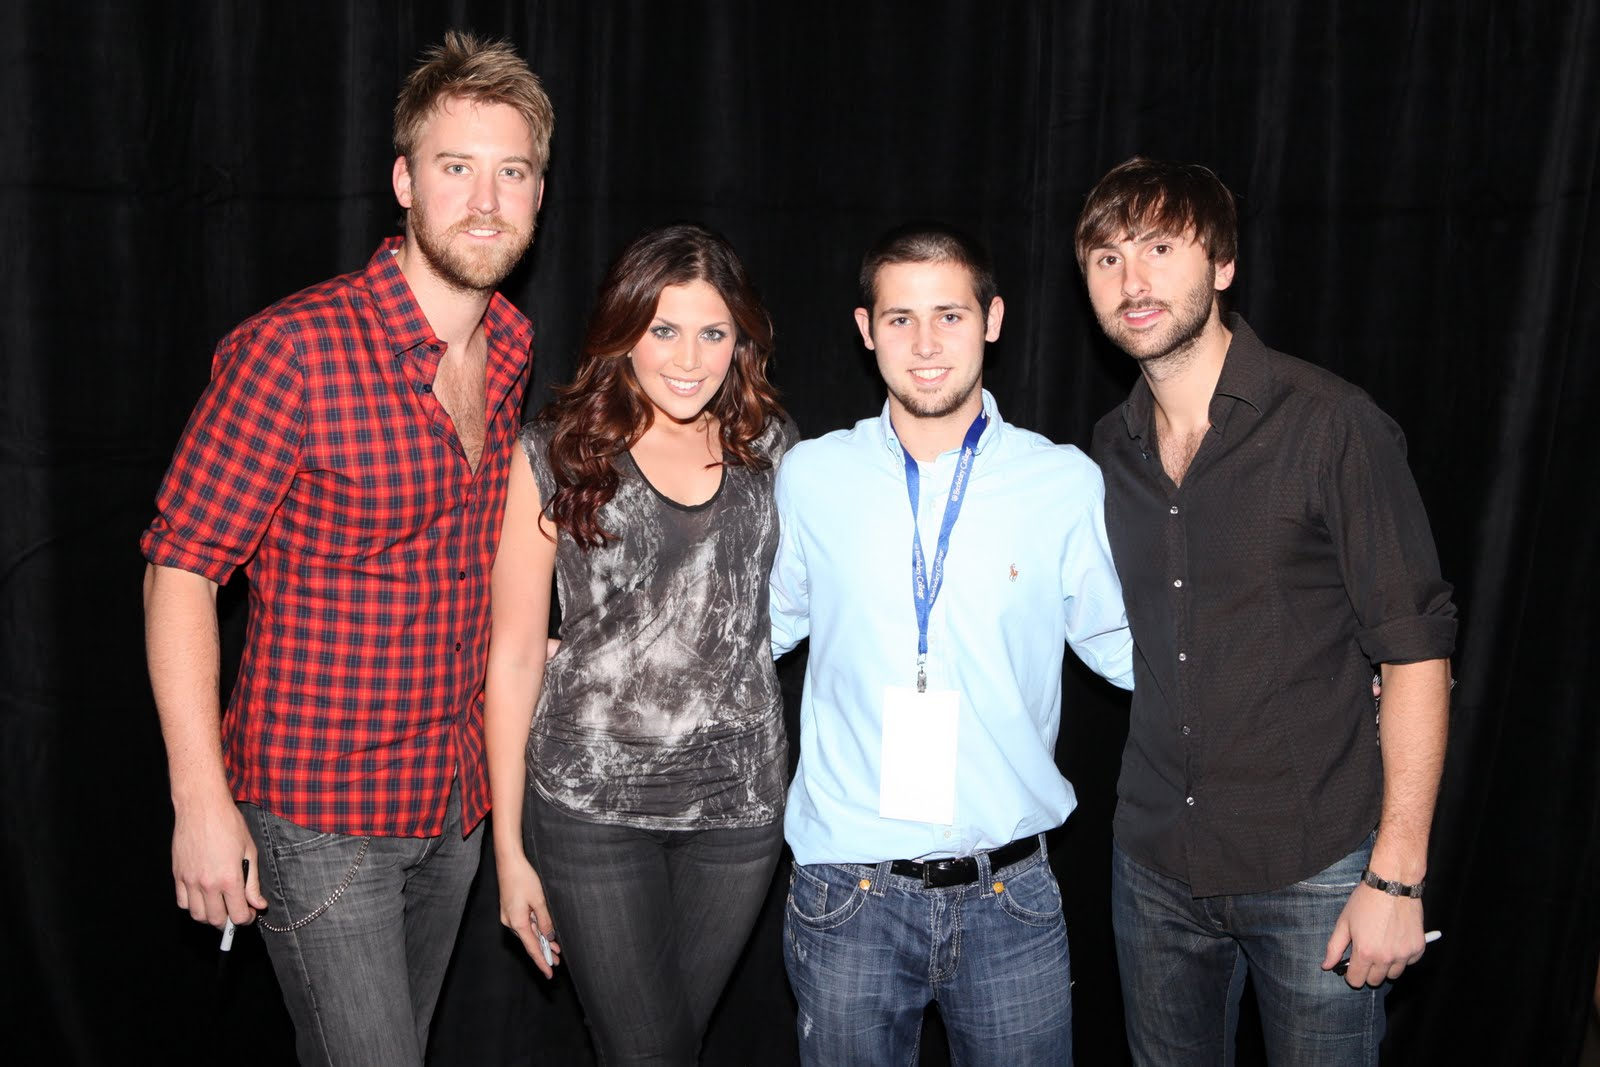 Bluewaterliving lady antebellum lady antebellum hayden has been in louisville ky for national deca conference while there he got to attend a meet and greet with ladya before their m4hsunfo